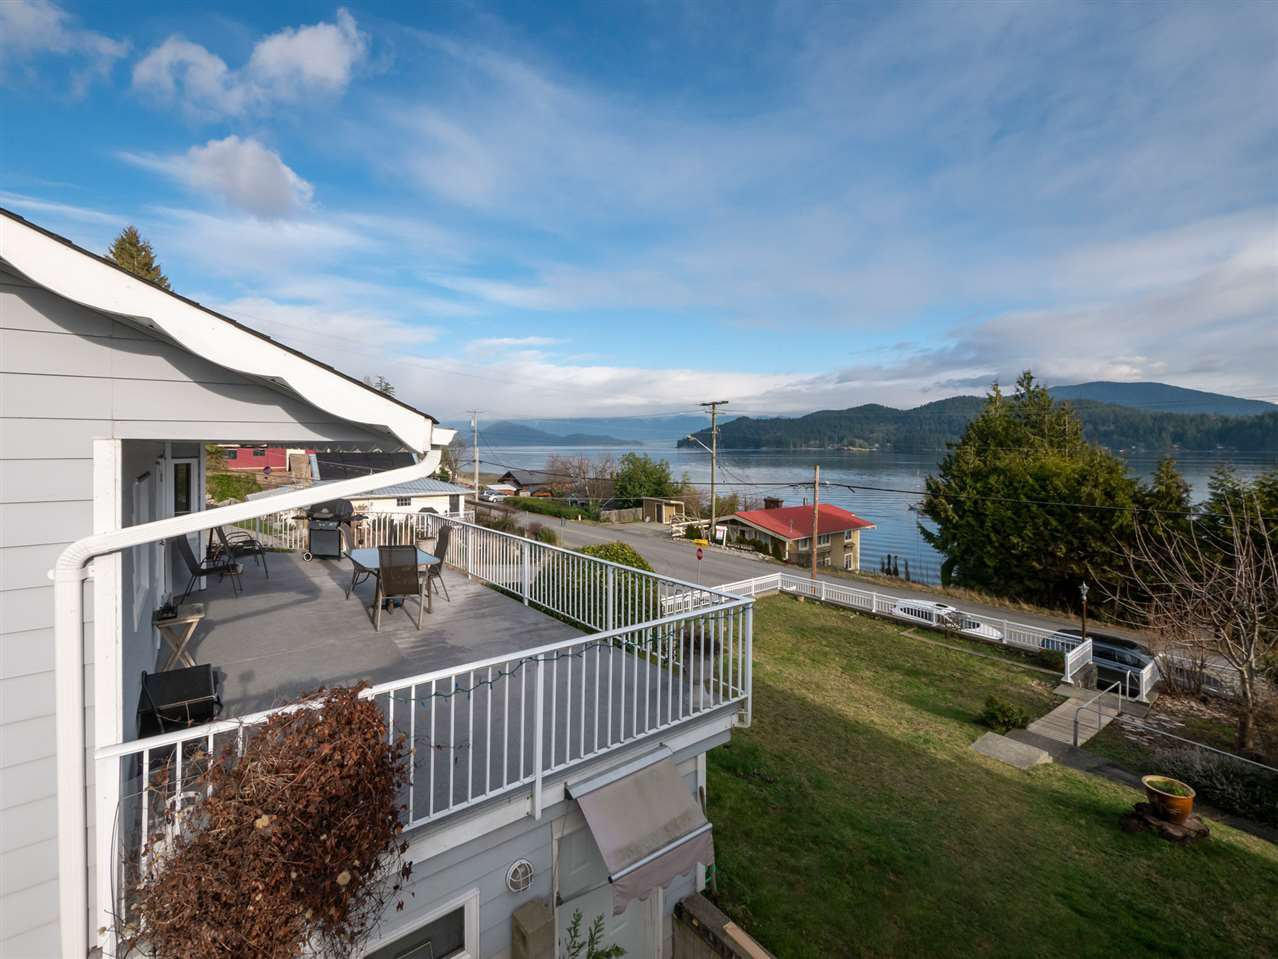 """Main Photo: 535 MARINE Drive in Gibsons: Gibsons & Area House for sale in """"LOWER GIBSONS"""" (Sunshine Coast)  : MLS®# R2464583"""